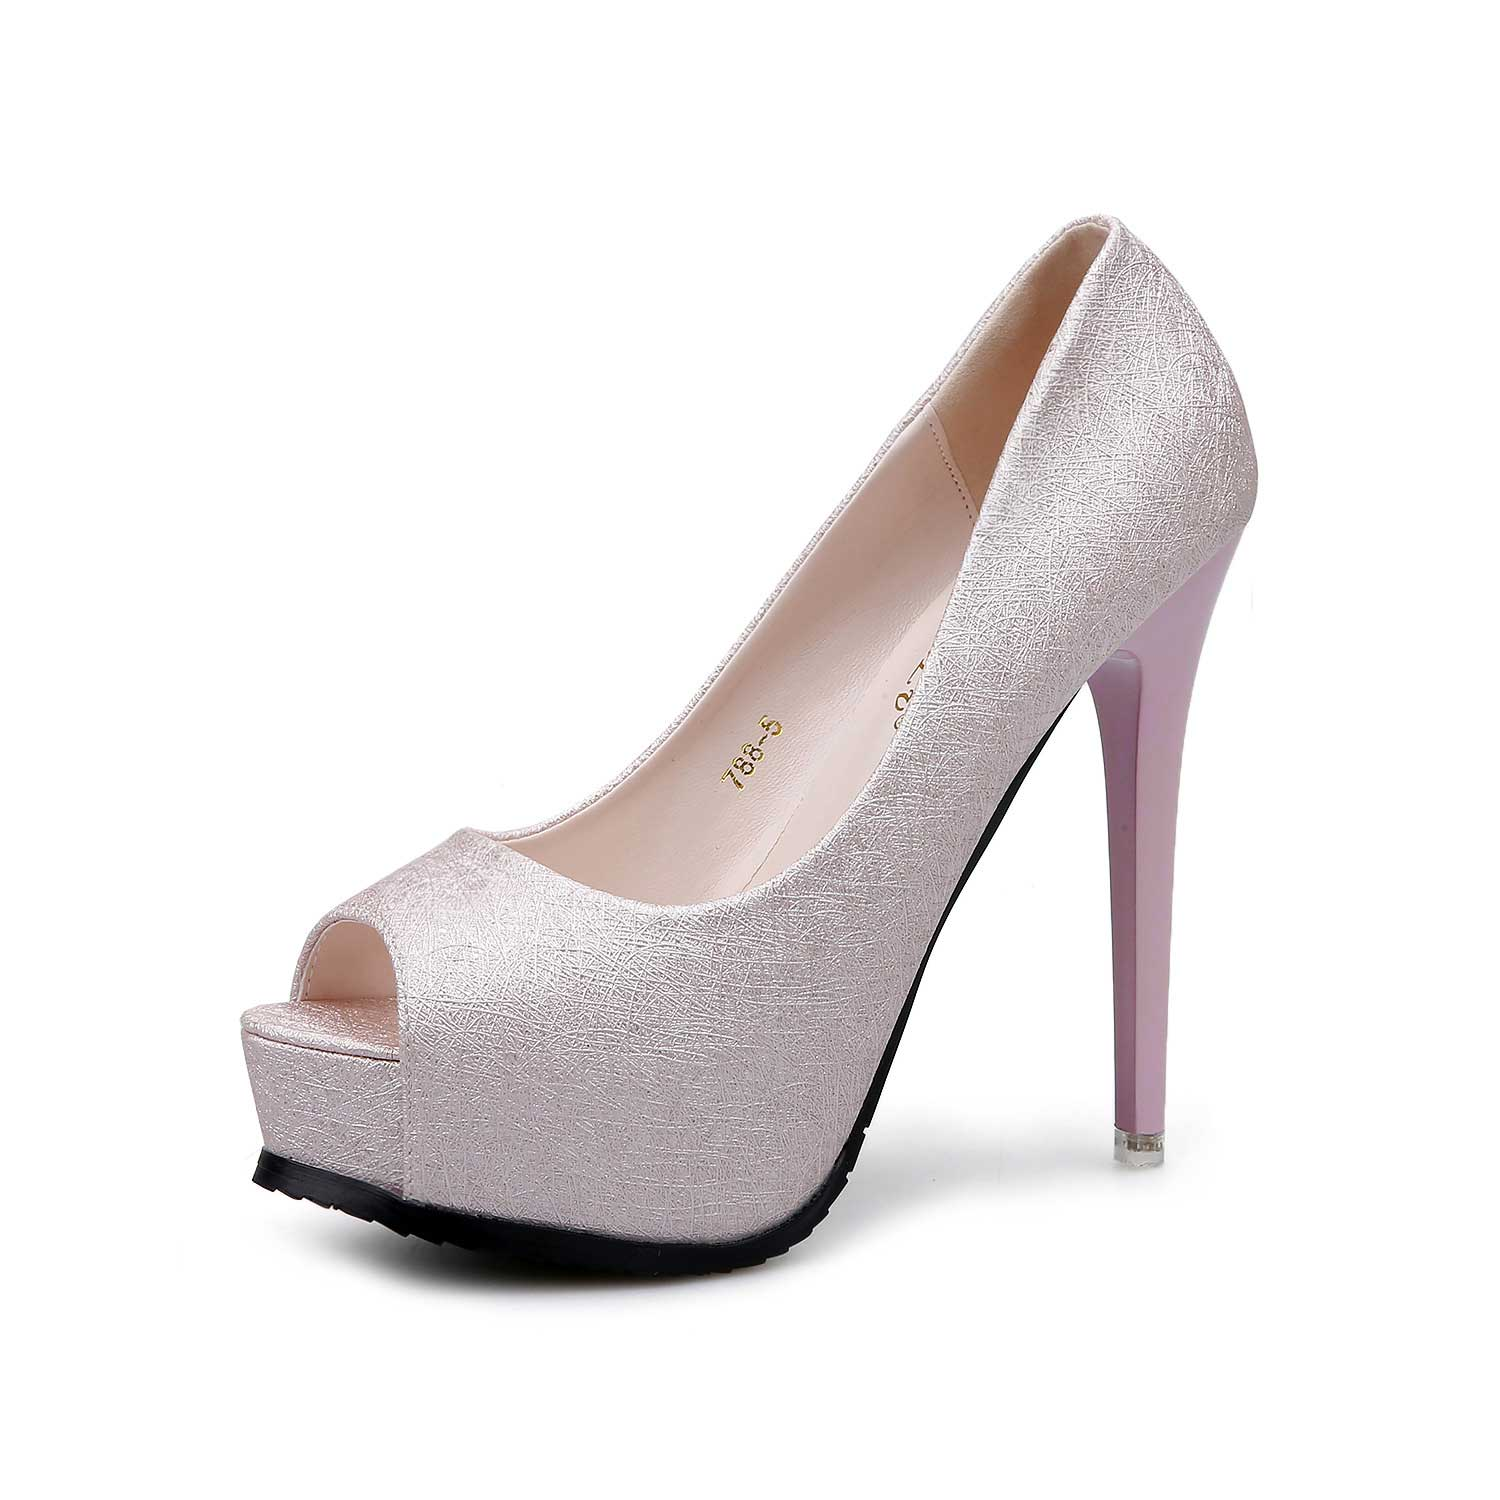 Silver Platform Peep Toe Fish Mouse Prom Shoes Stiletto Heels